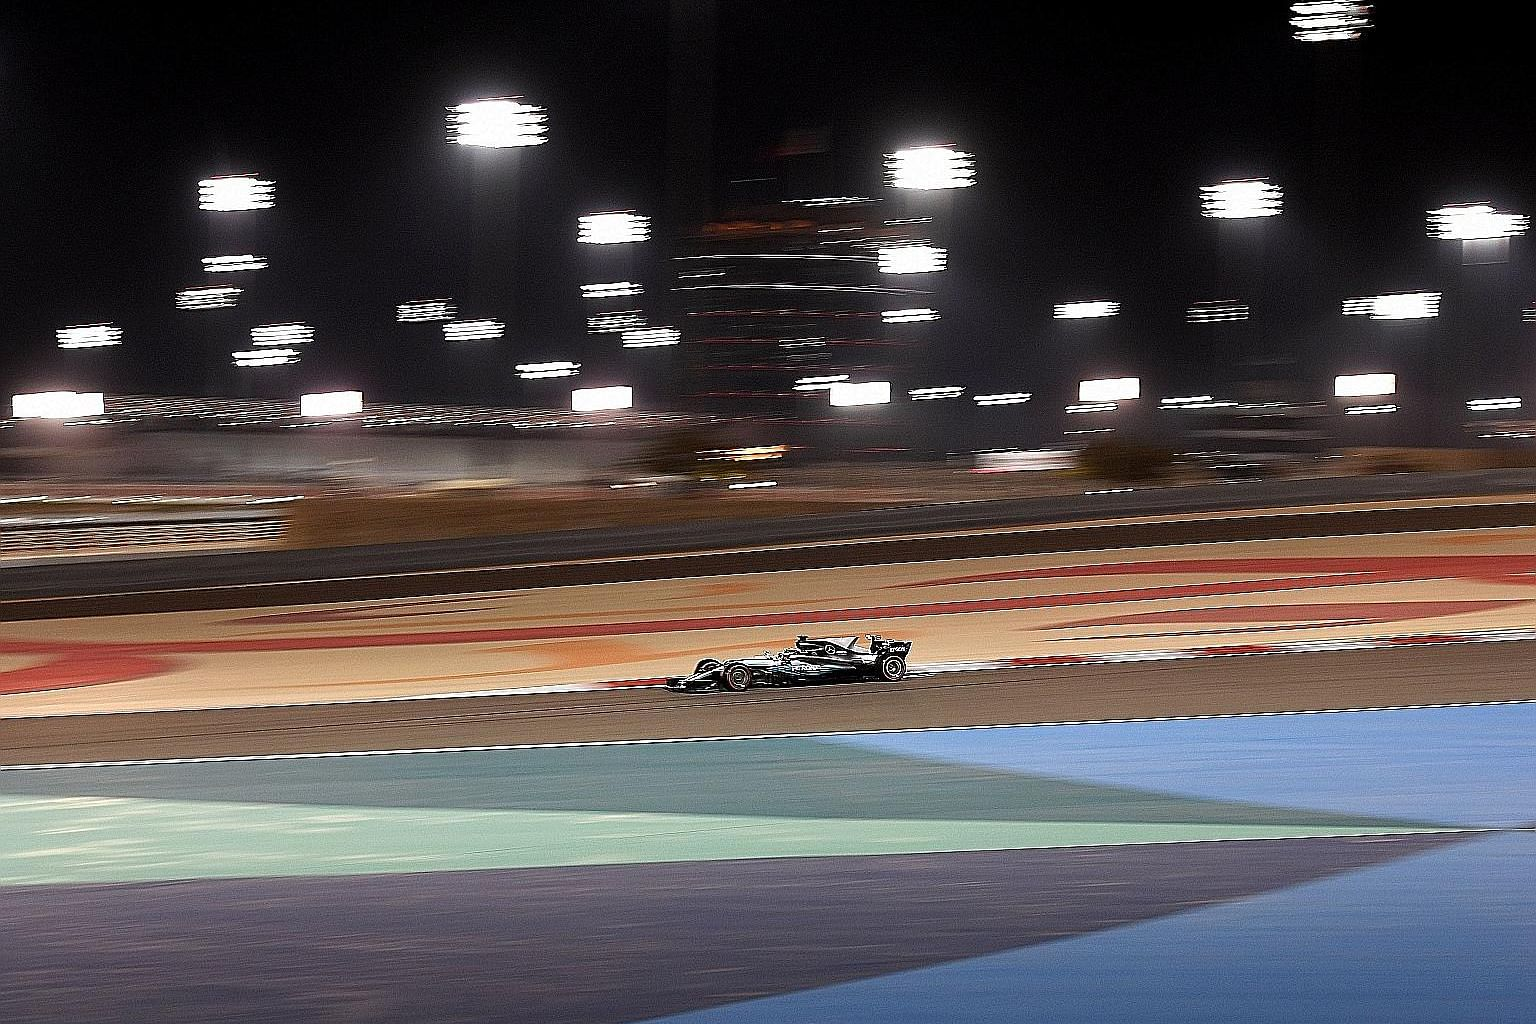 Mercedes driver Lewis Hamilton competing during qualifying for the Bahrain Grand Prix. He was second after a DRS issue.